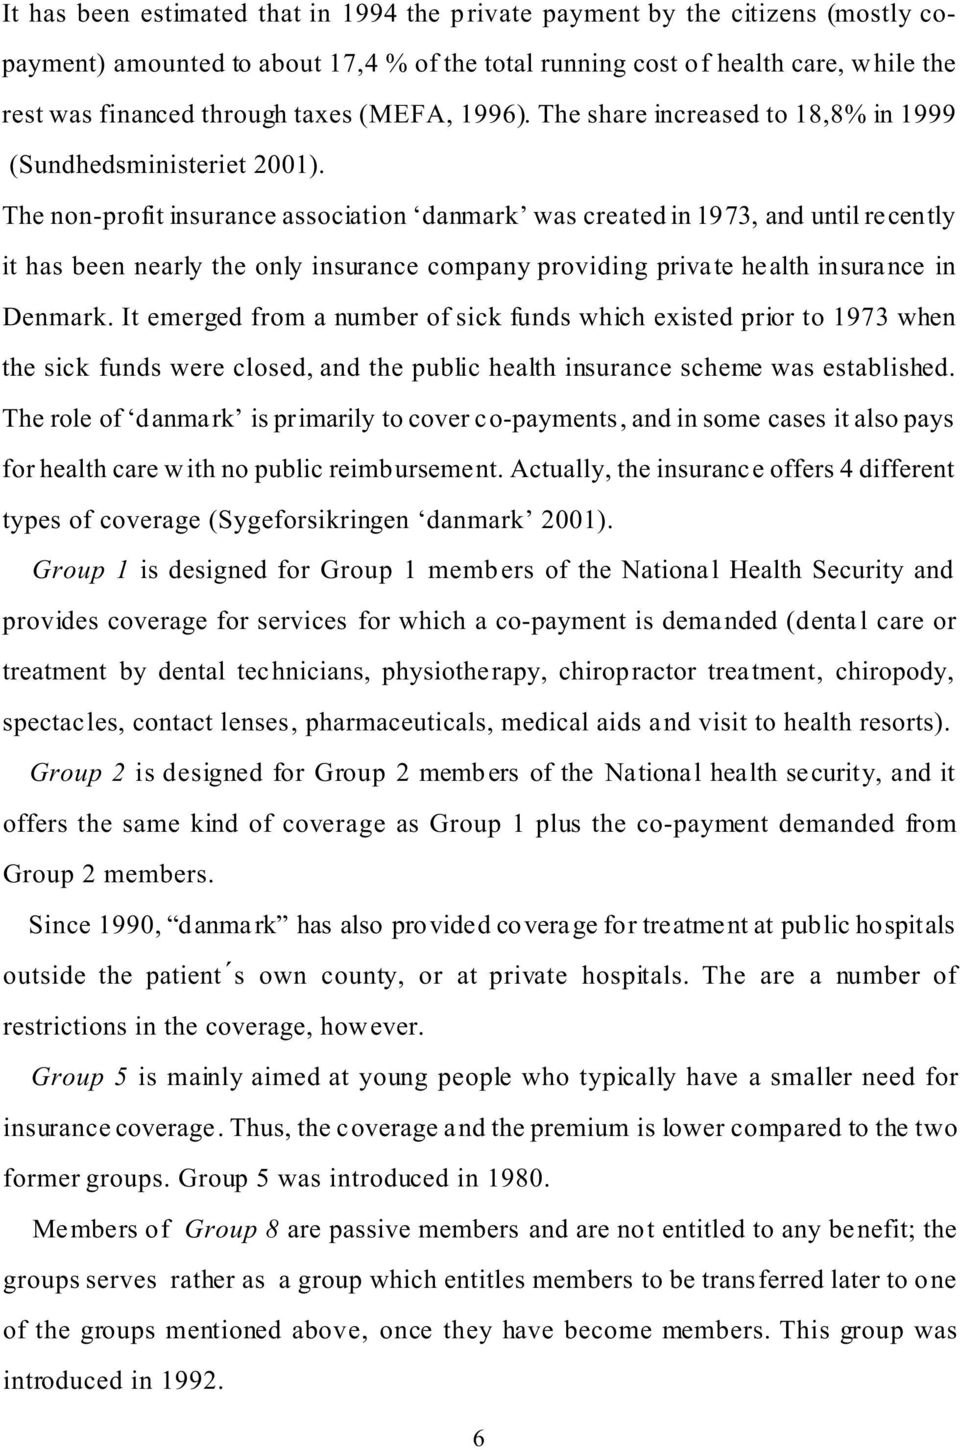 The non-profit insurance association danmark was created in 1973, and until recently it has been nearly the only insurance company providing private health insurance in Denmark.